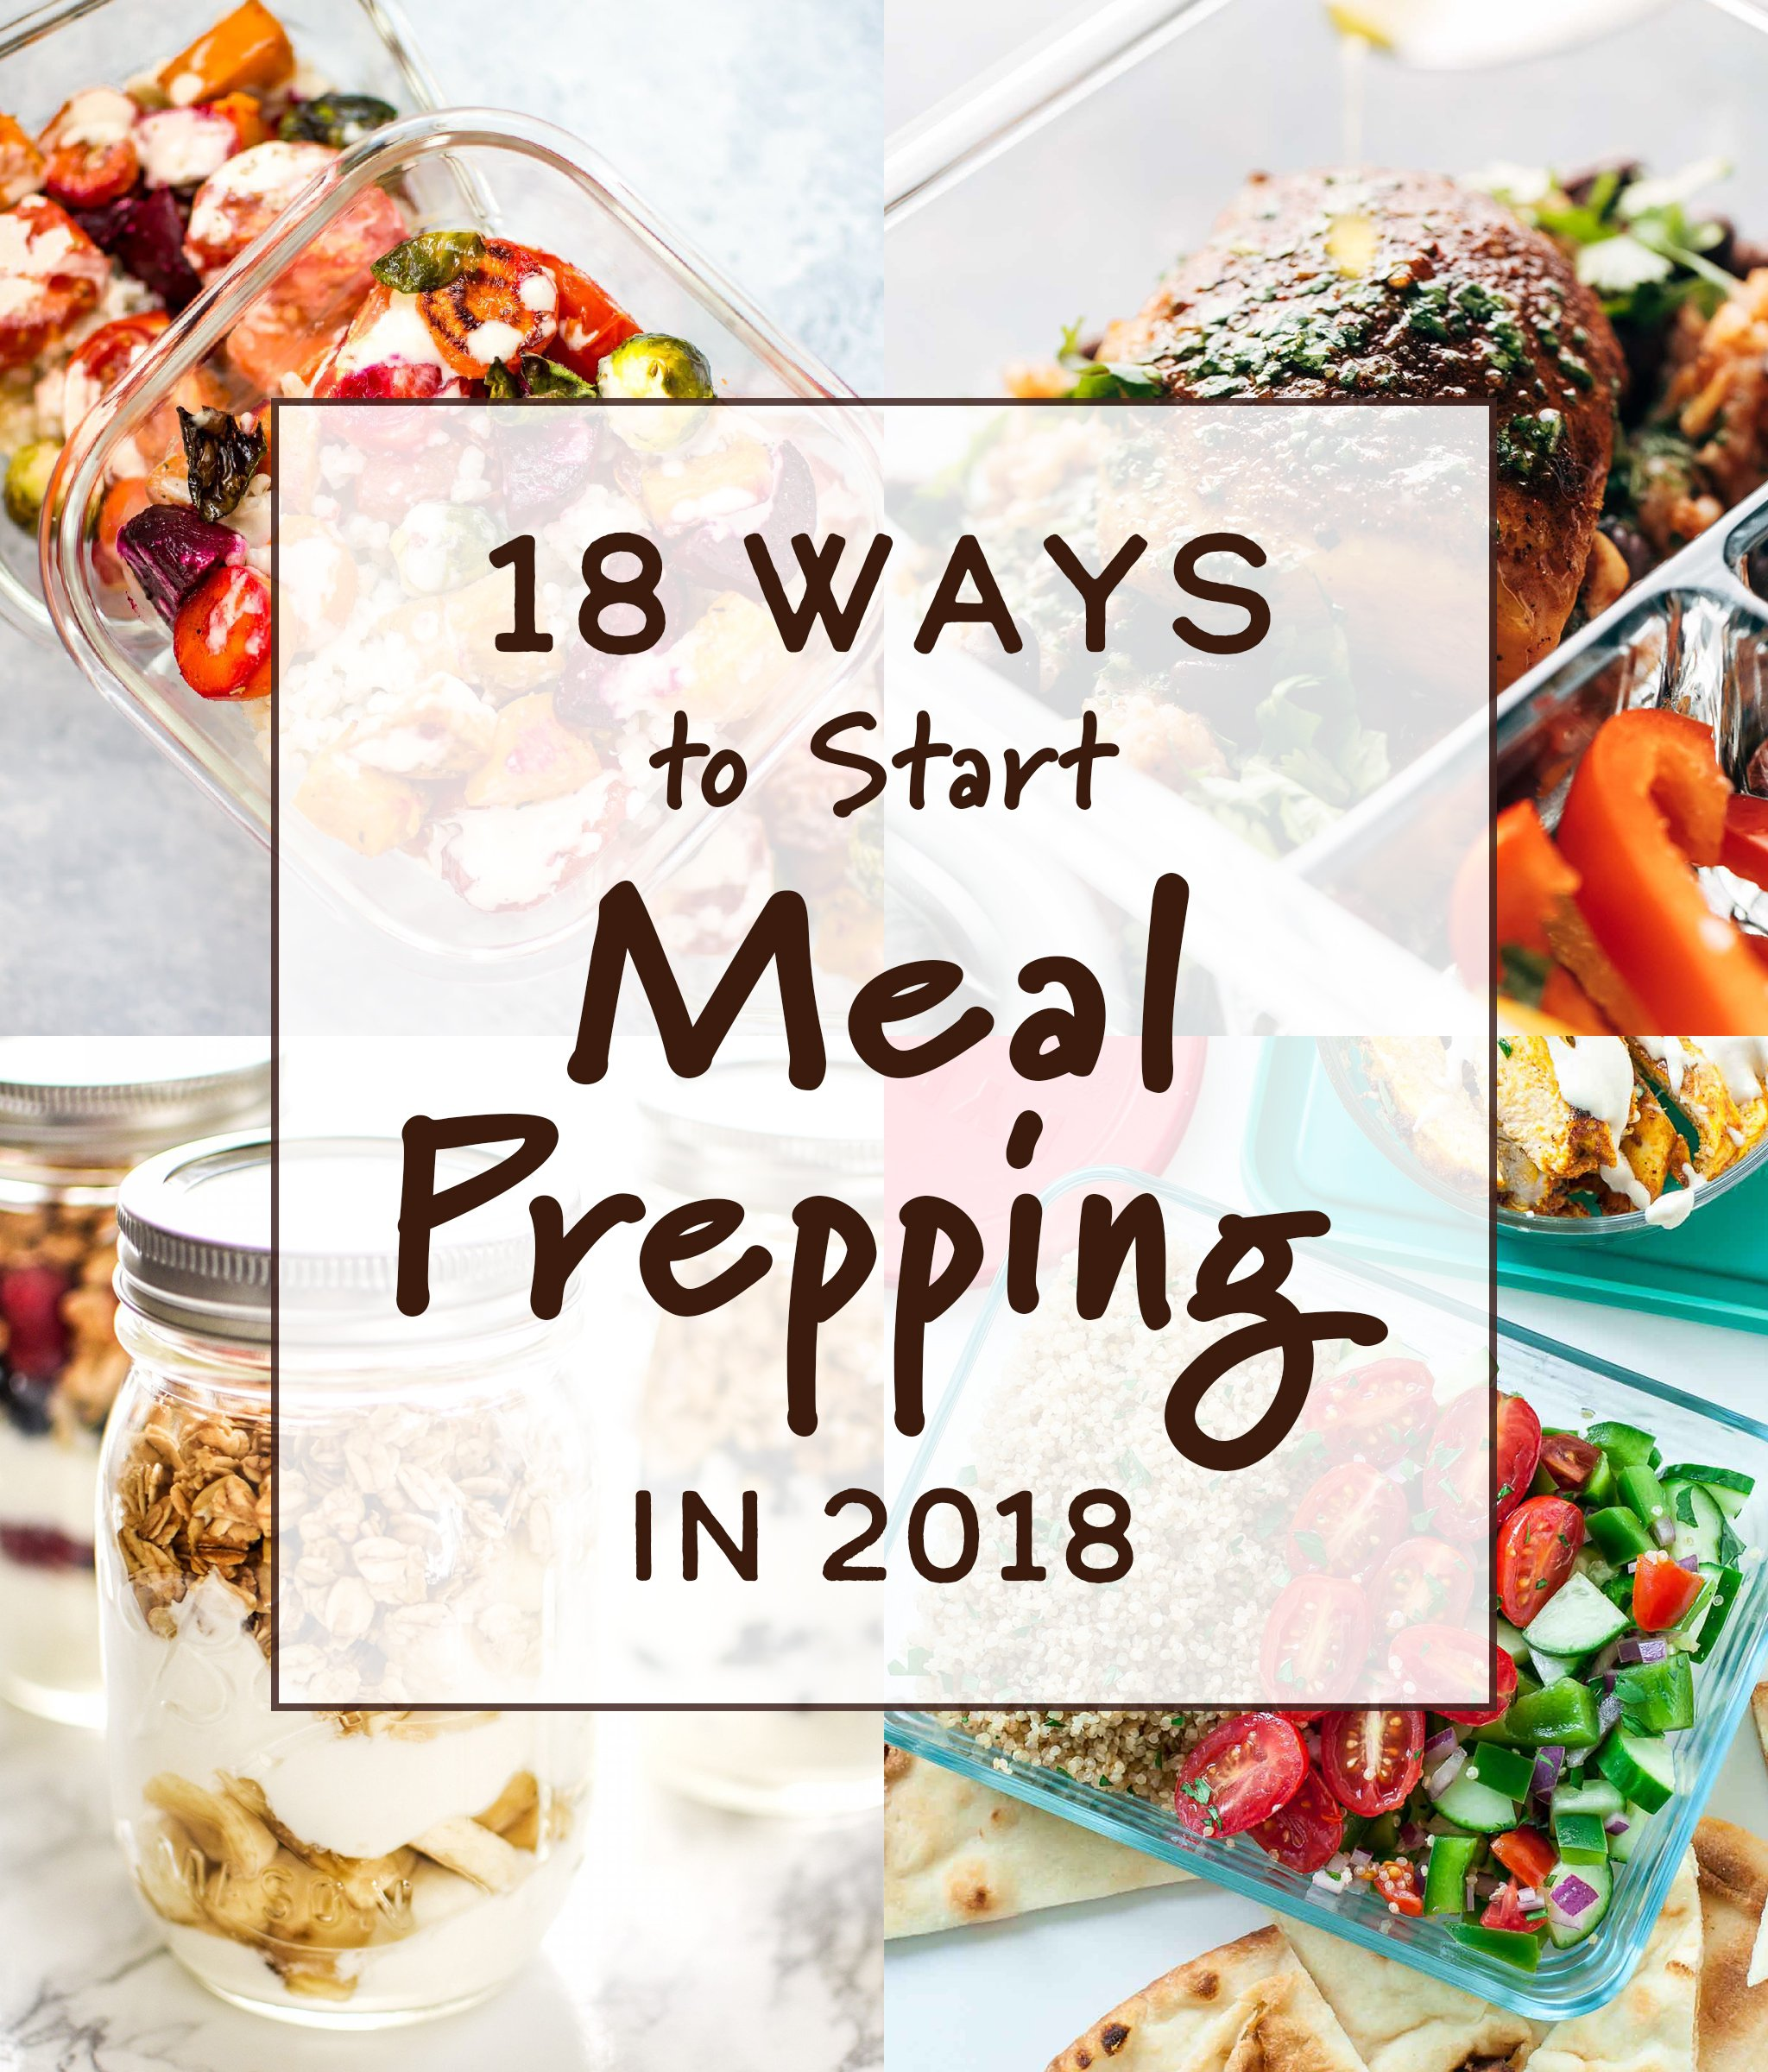 Cover photo for the article 18 Ways to Start Meal Prepping in 2018 including 4 photos that appear later in the article.